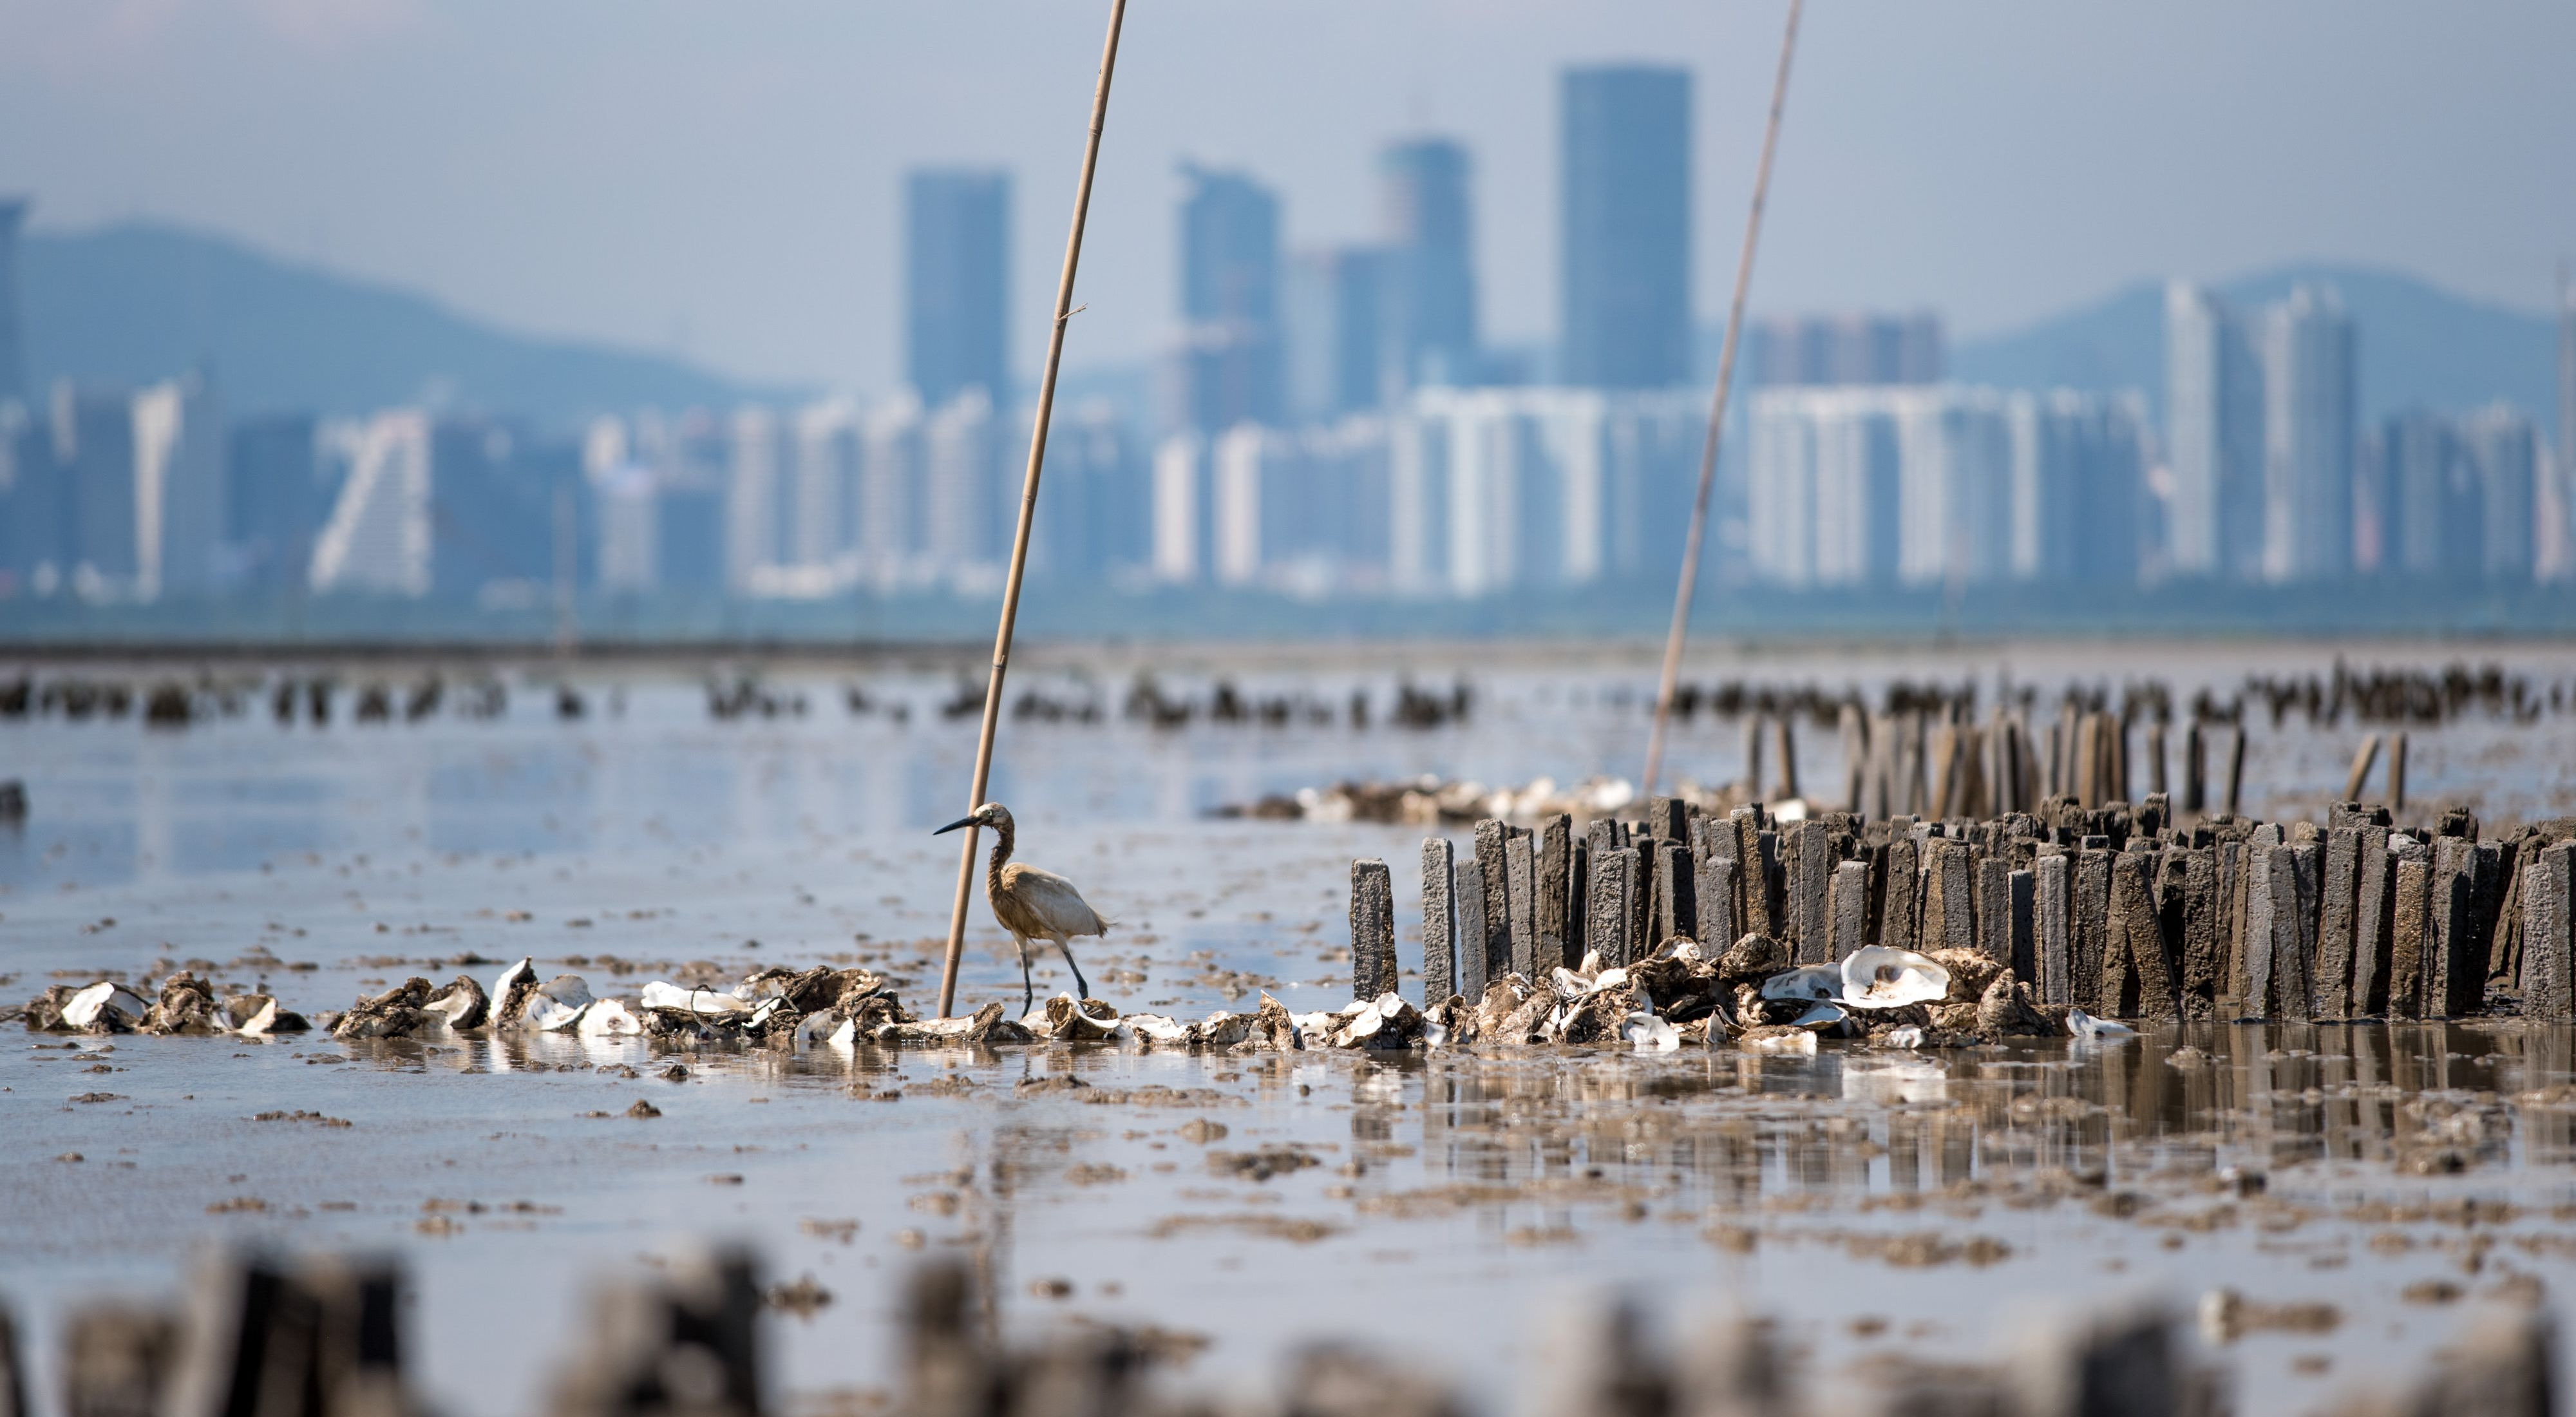 A waterbird stands on a collection of oyster shells in the bay.